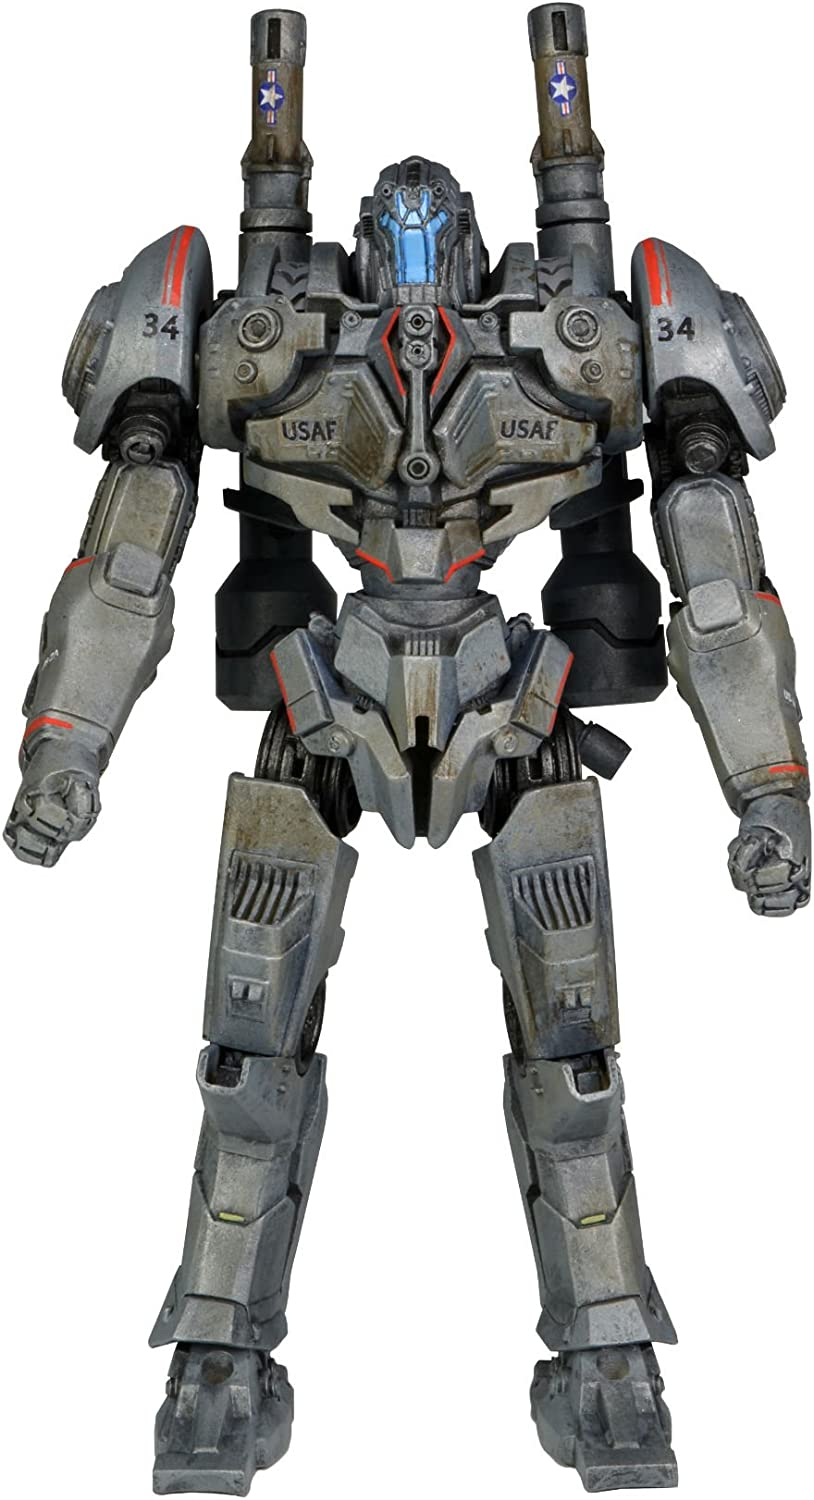 "7/"" inch Scale Pacific Rim Jaeger Action Figure Toy Gift Set New Box Package"